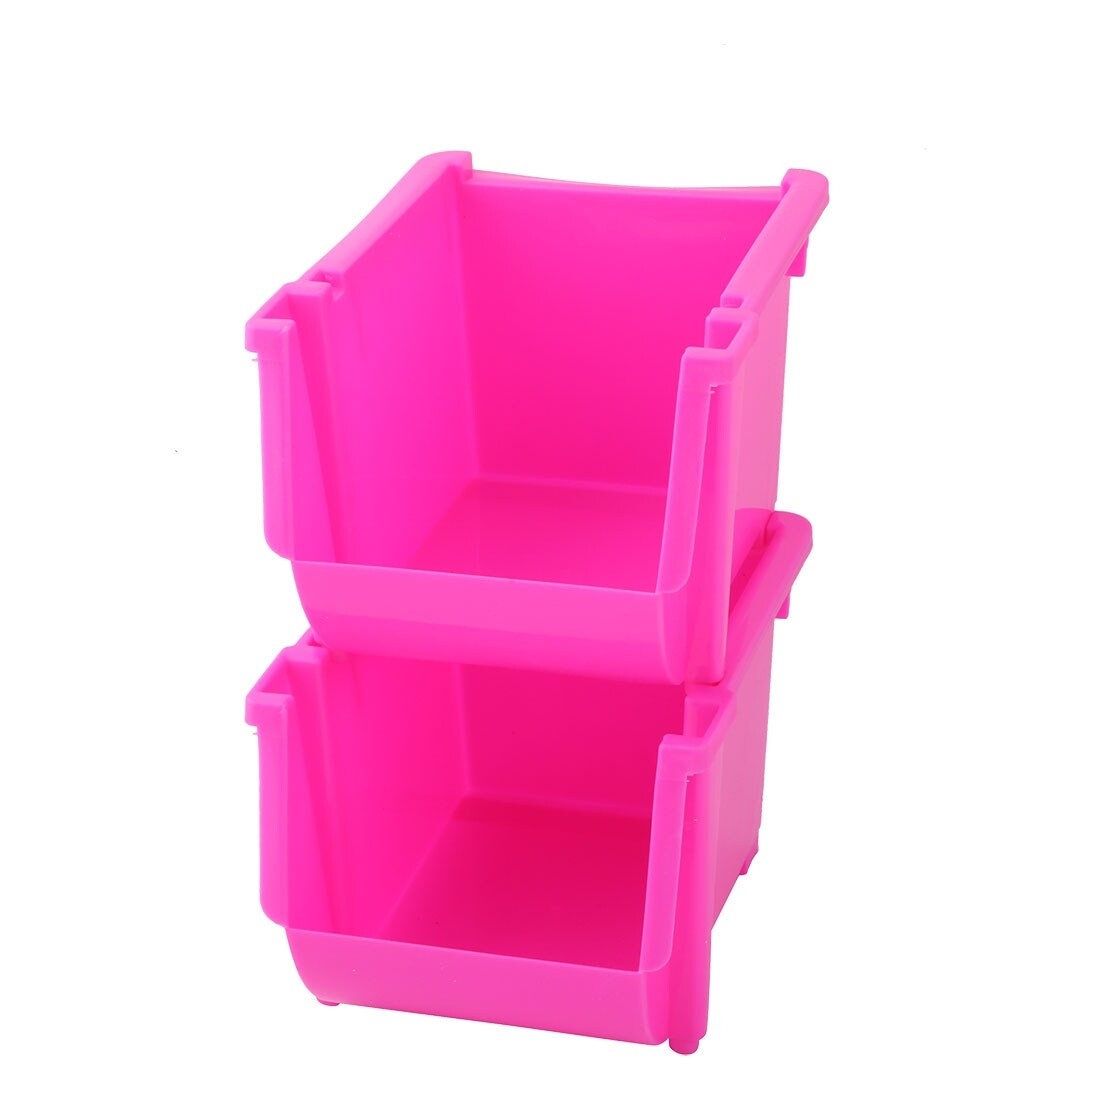 Stationary Boxes Household Snacks Candy Stationery Container Storage Boxes Holder Fuchsia 2pcs